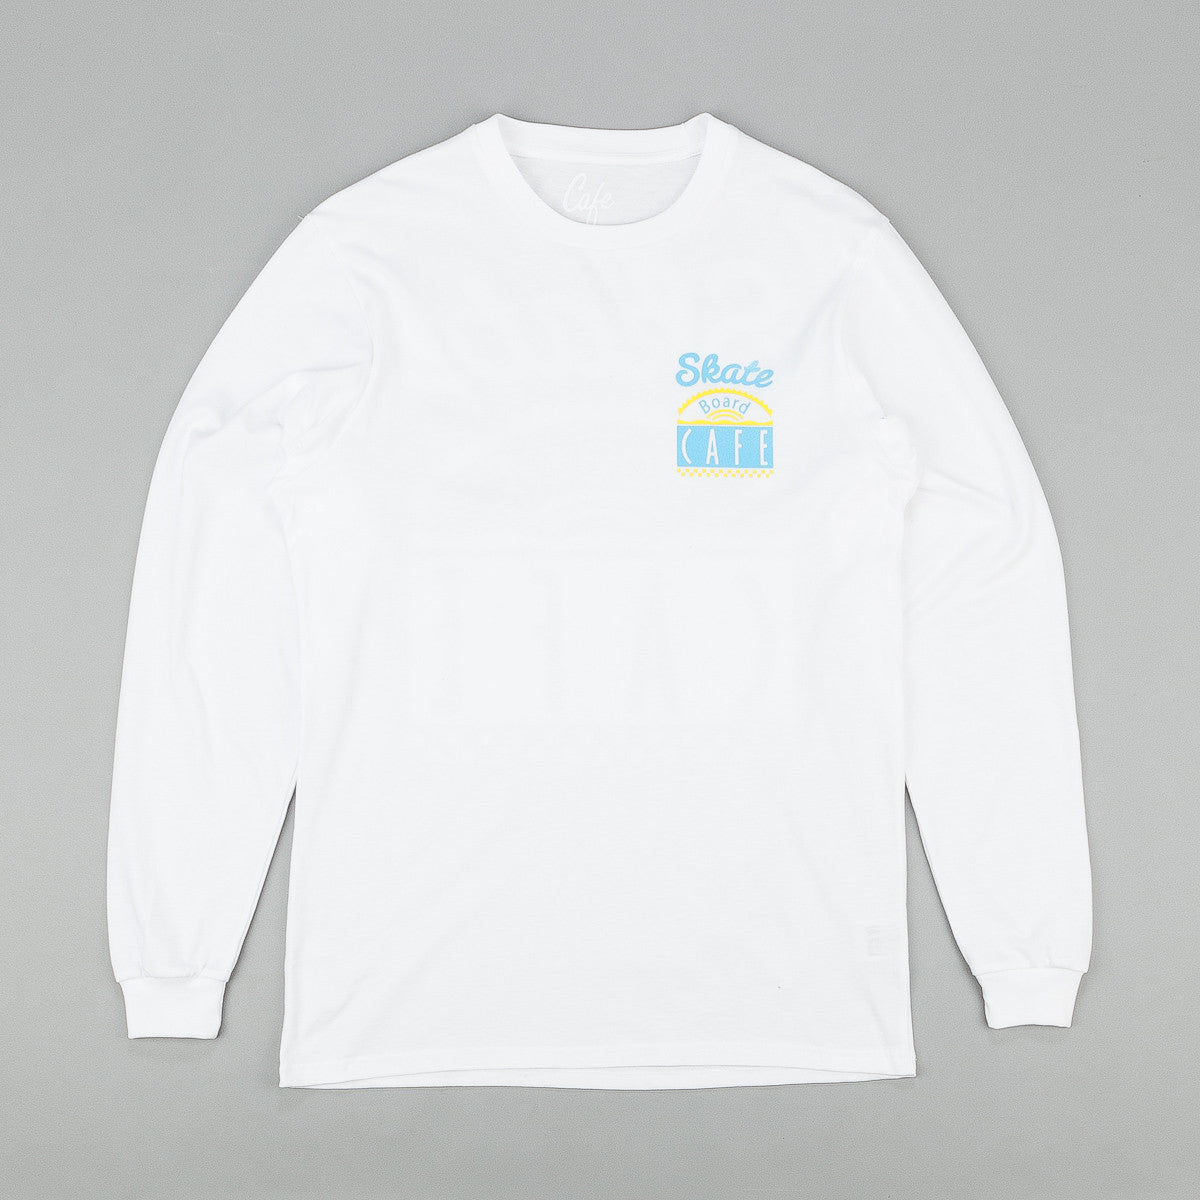 Skateboard Cafe Diner Long Sleeve T-Shirt